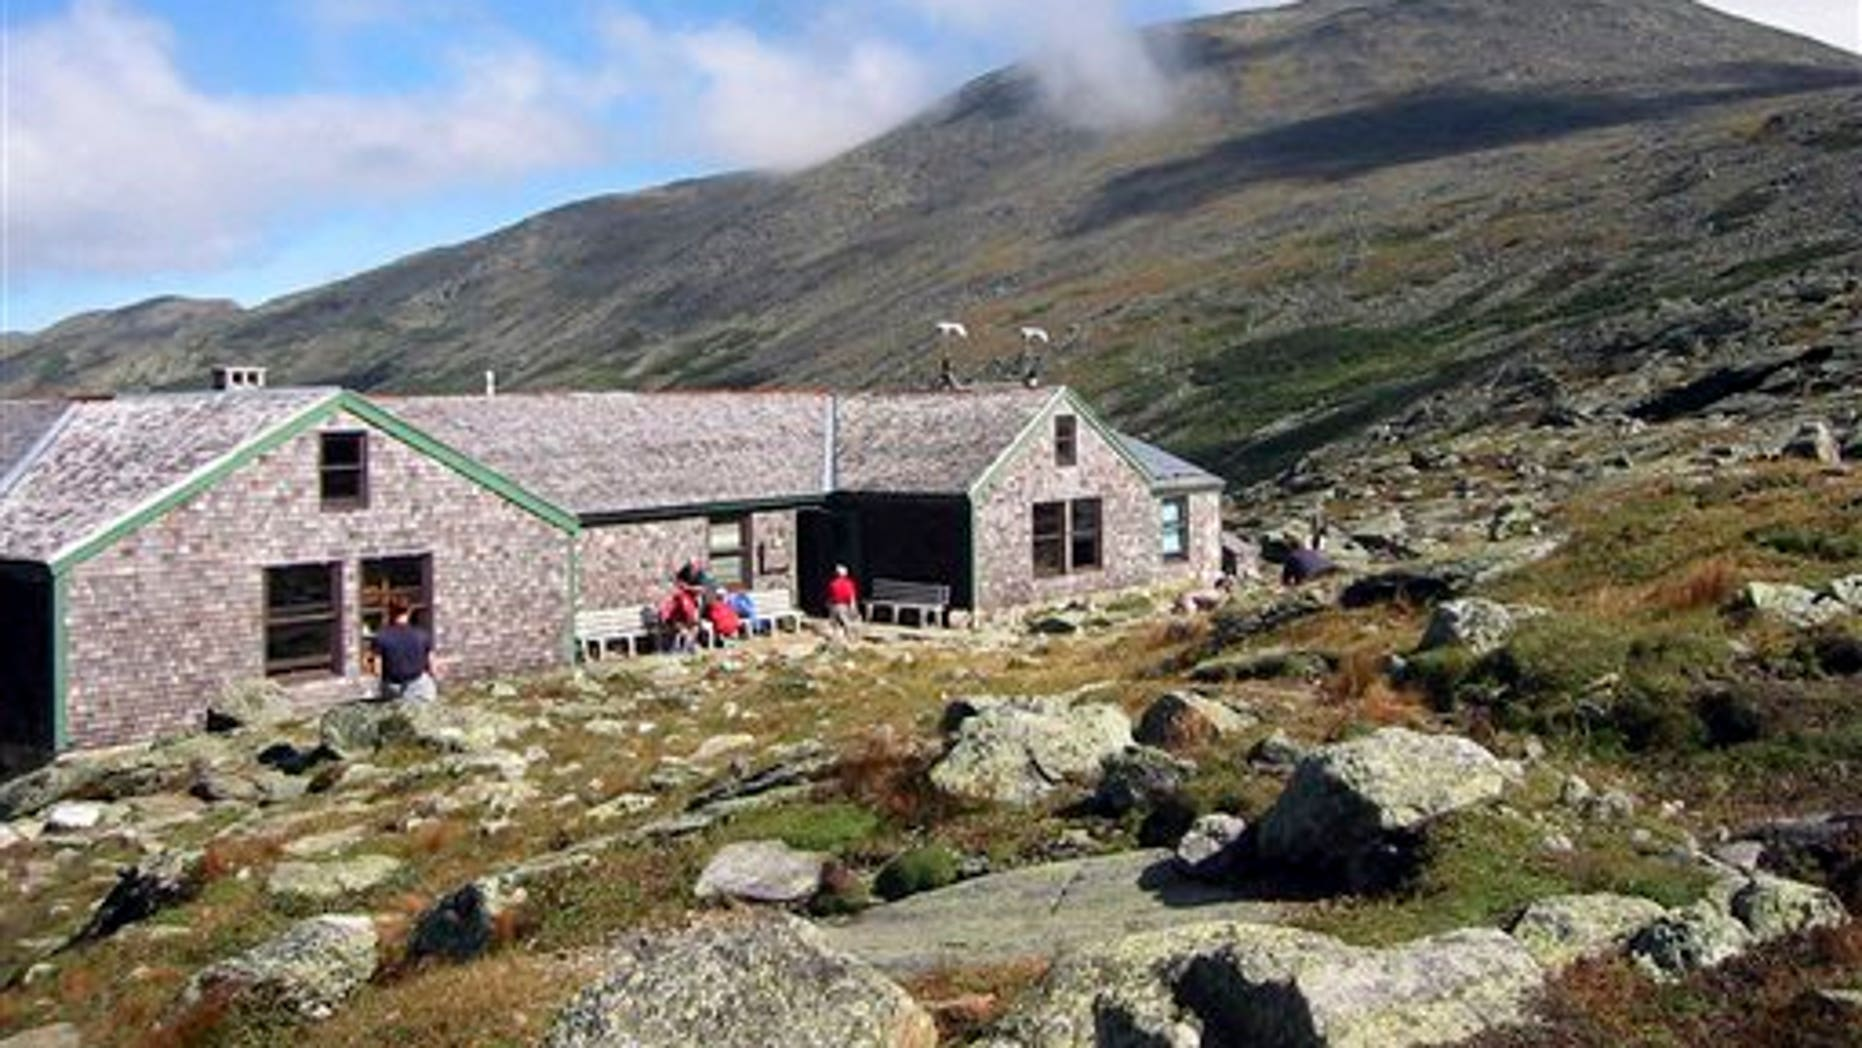 The Lakes of the Clouds Hut is seen in its spot just below the summit of Mount Washington in New Hampshire in this Sept. 11, 2004, photo. The structure is the highest among those owned and operated by the Appalachian Mountain Club, sitting on a ridge at 5,012 feet.  (AP Photo/Lisa Marie Pane, File)